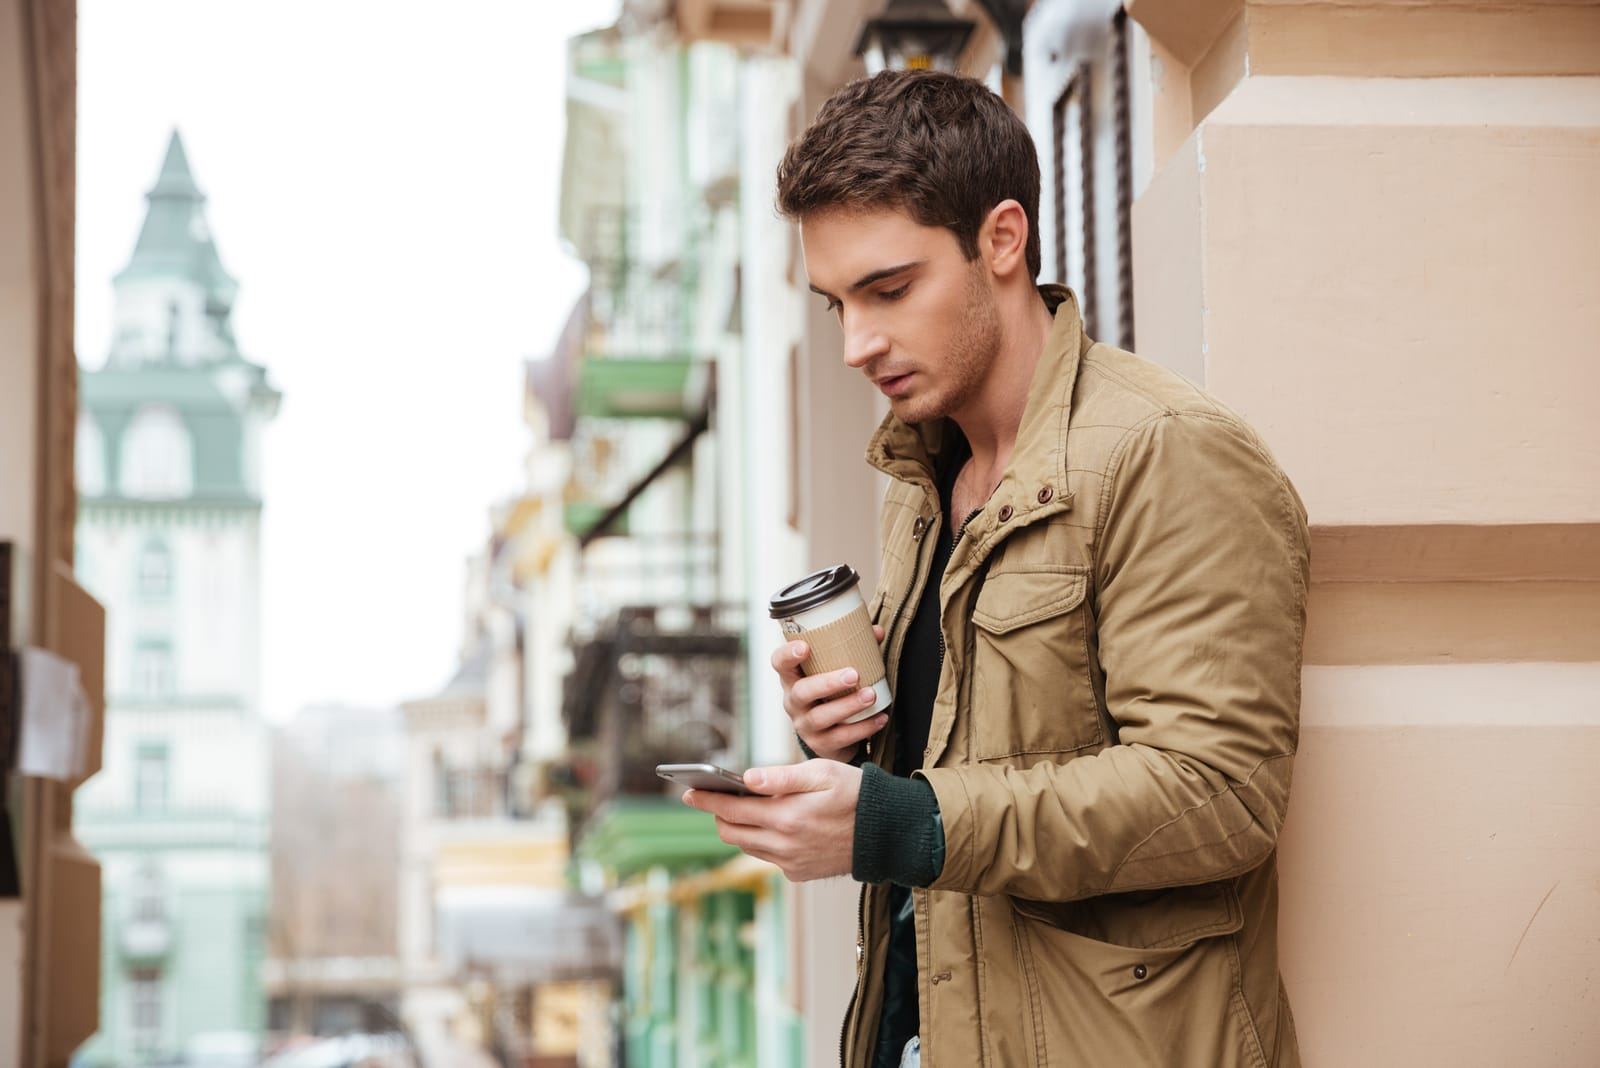 man holding cup of coffee and phone in his hands